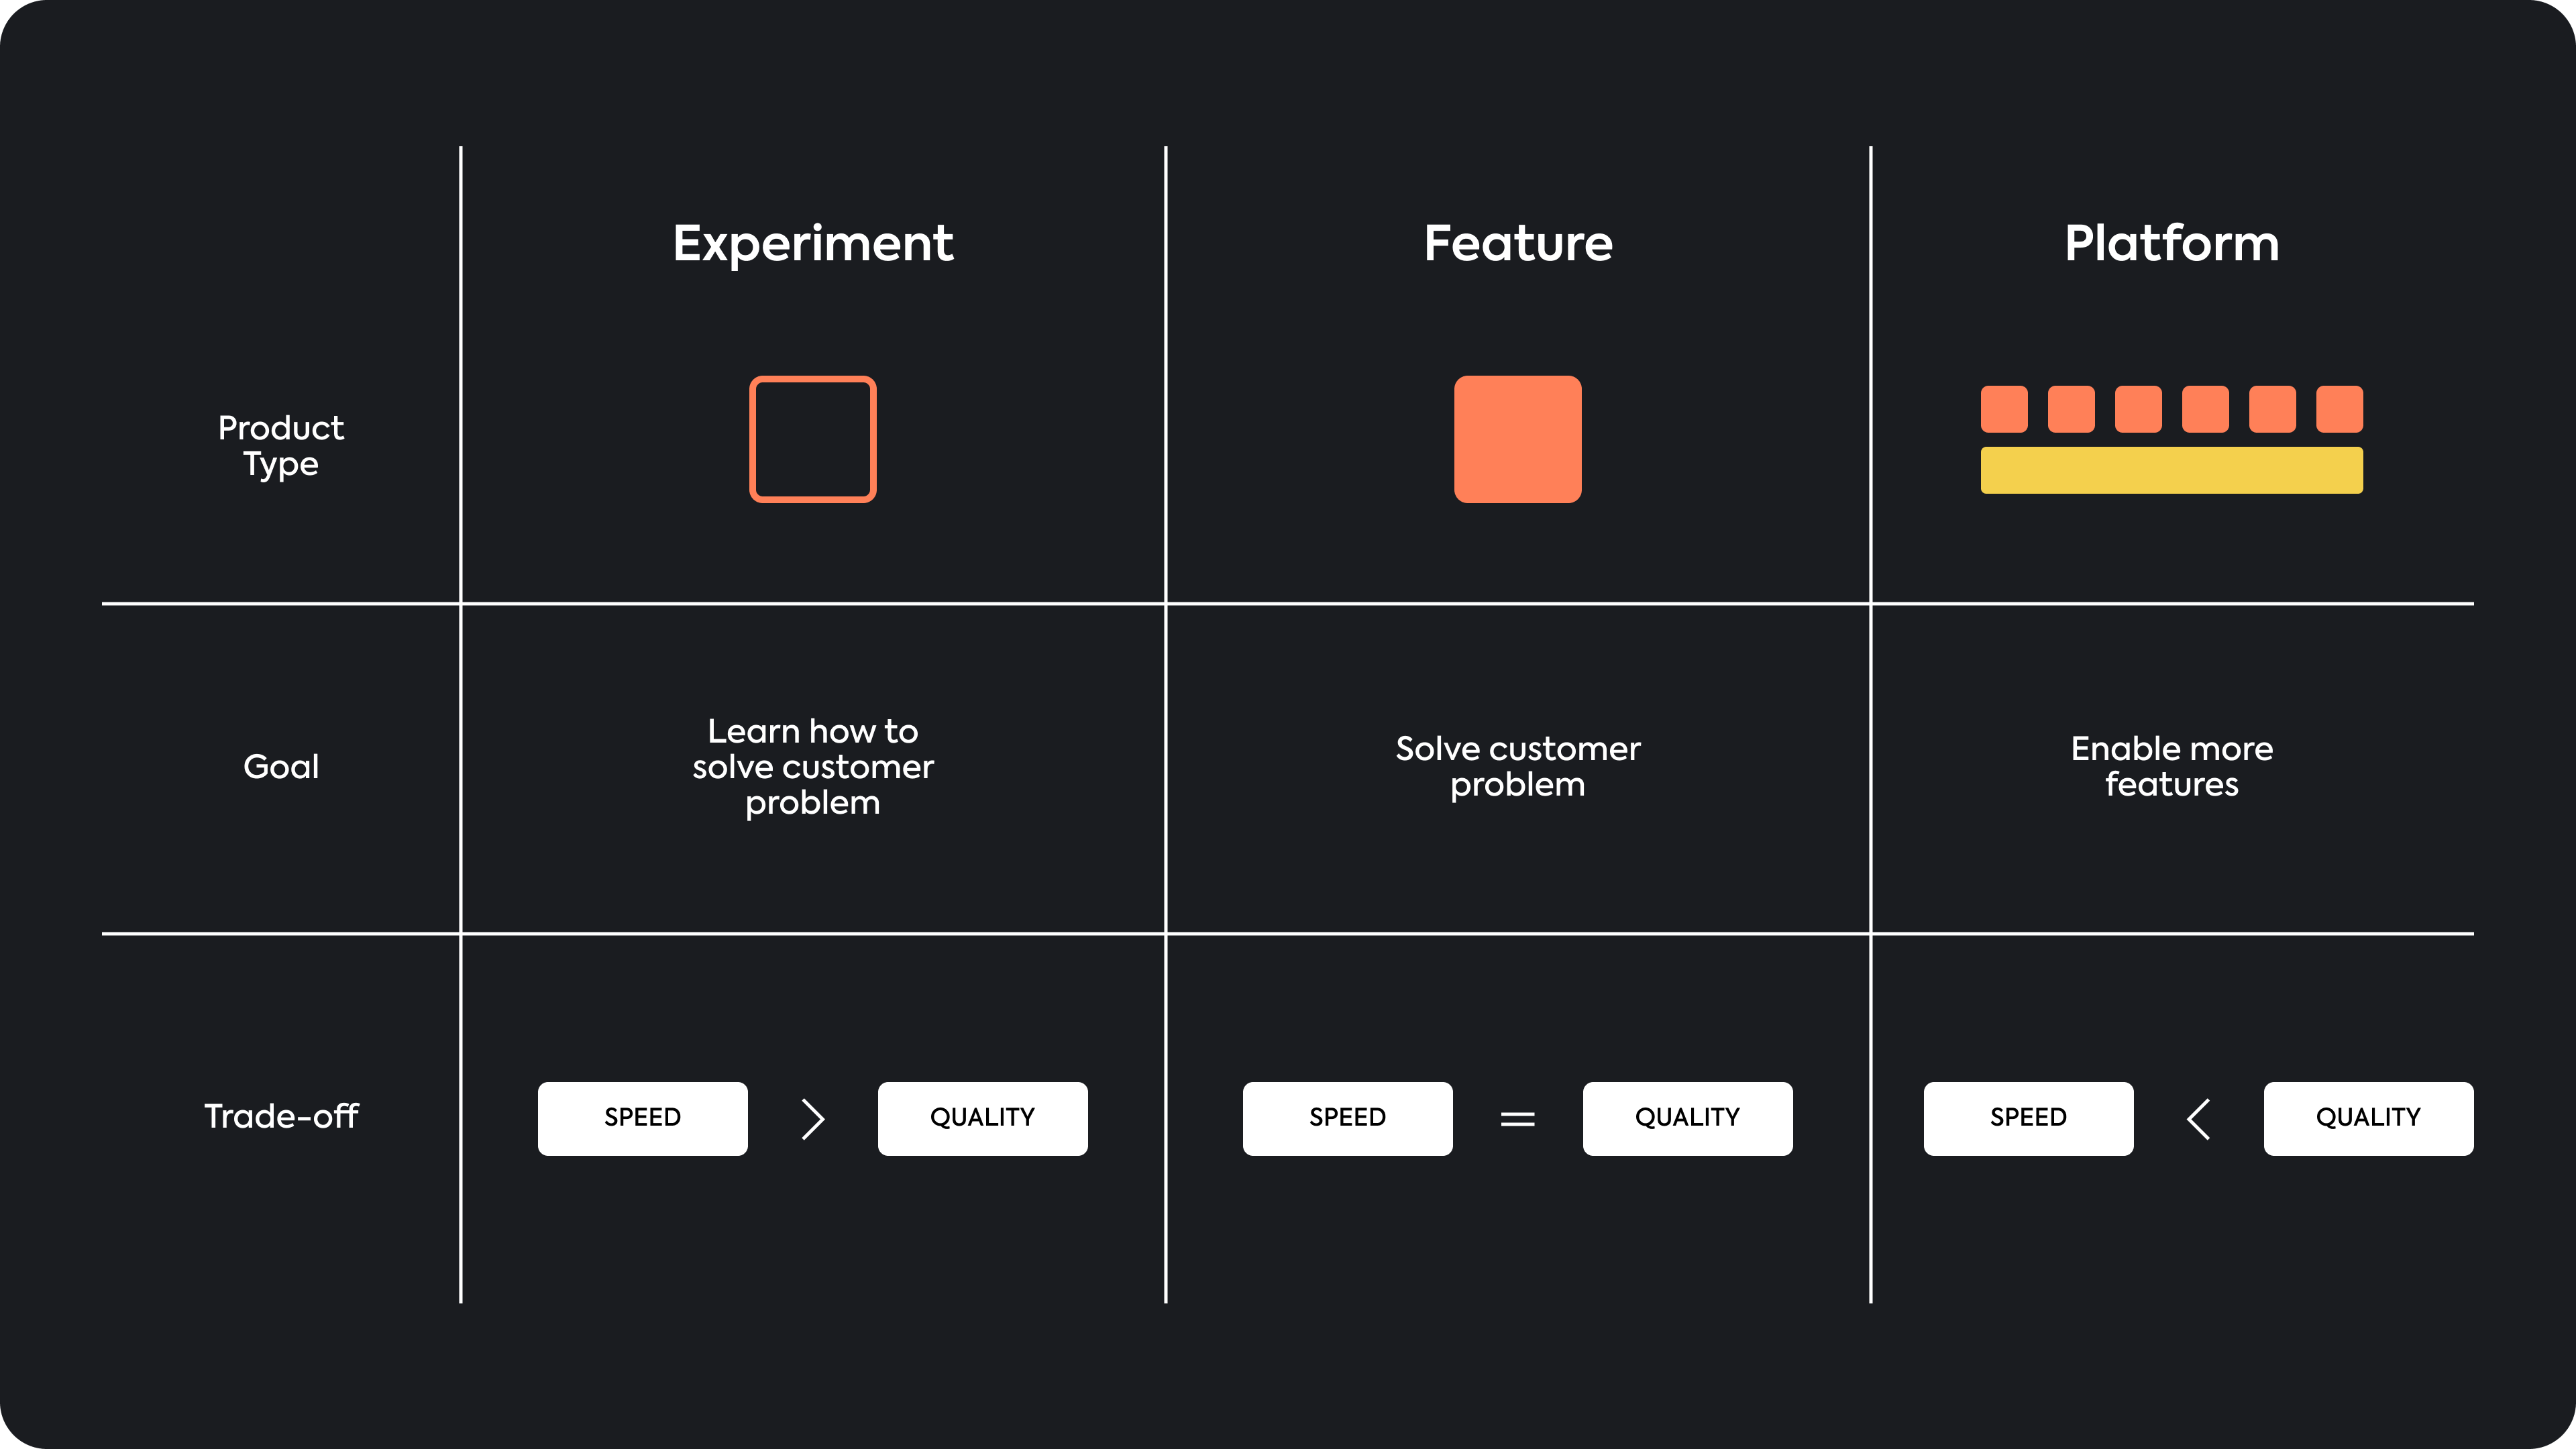 Mental Models For Product Managers: Three Types Of Product Development